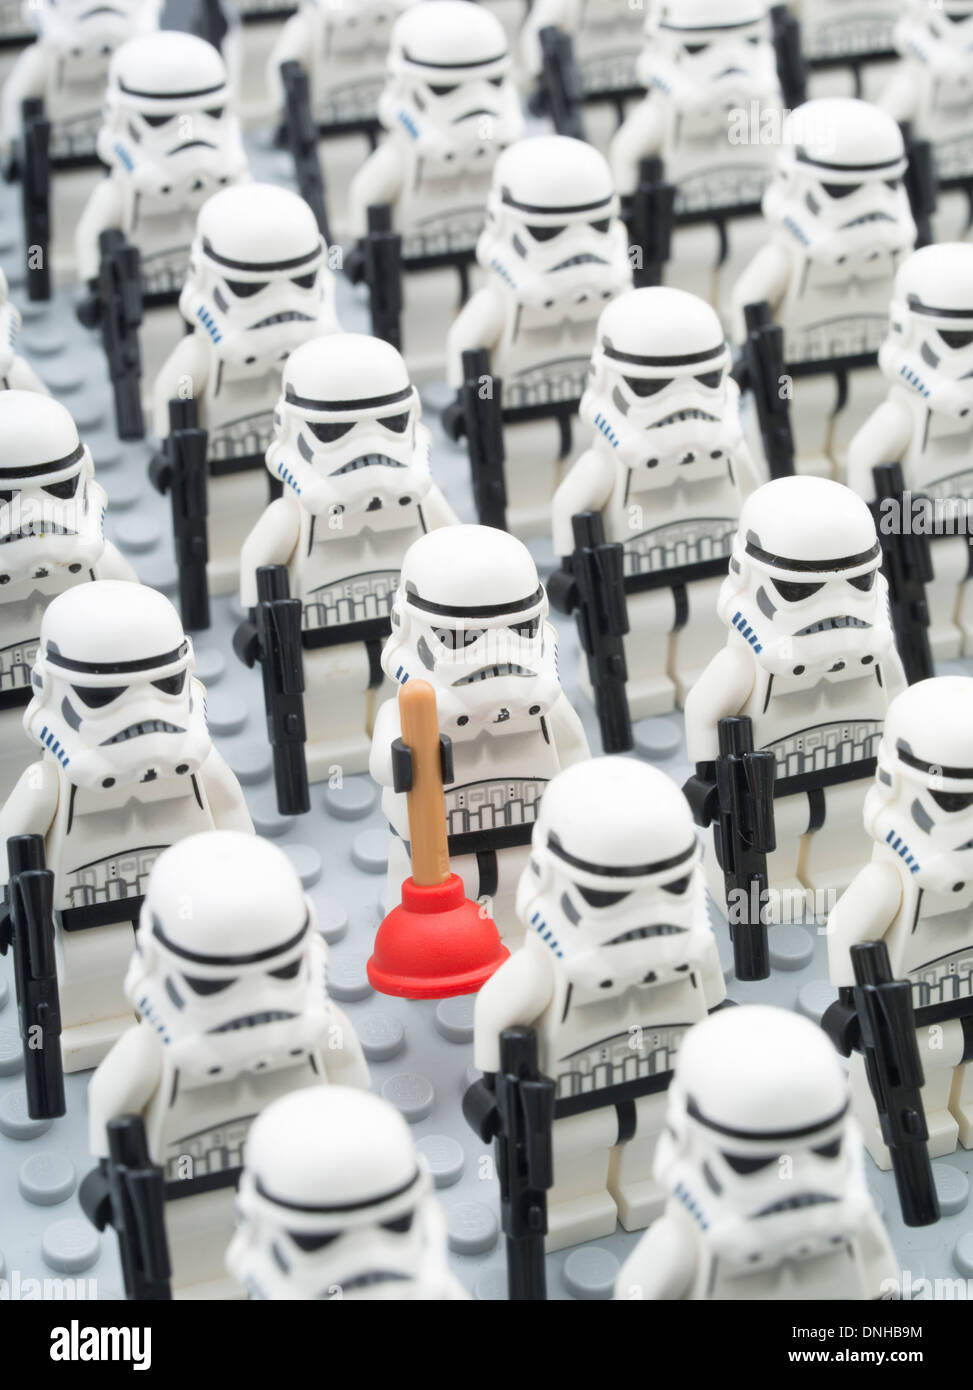 Star Wars Lego Minifigure Toys Stormtrooper - Stock Image